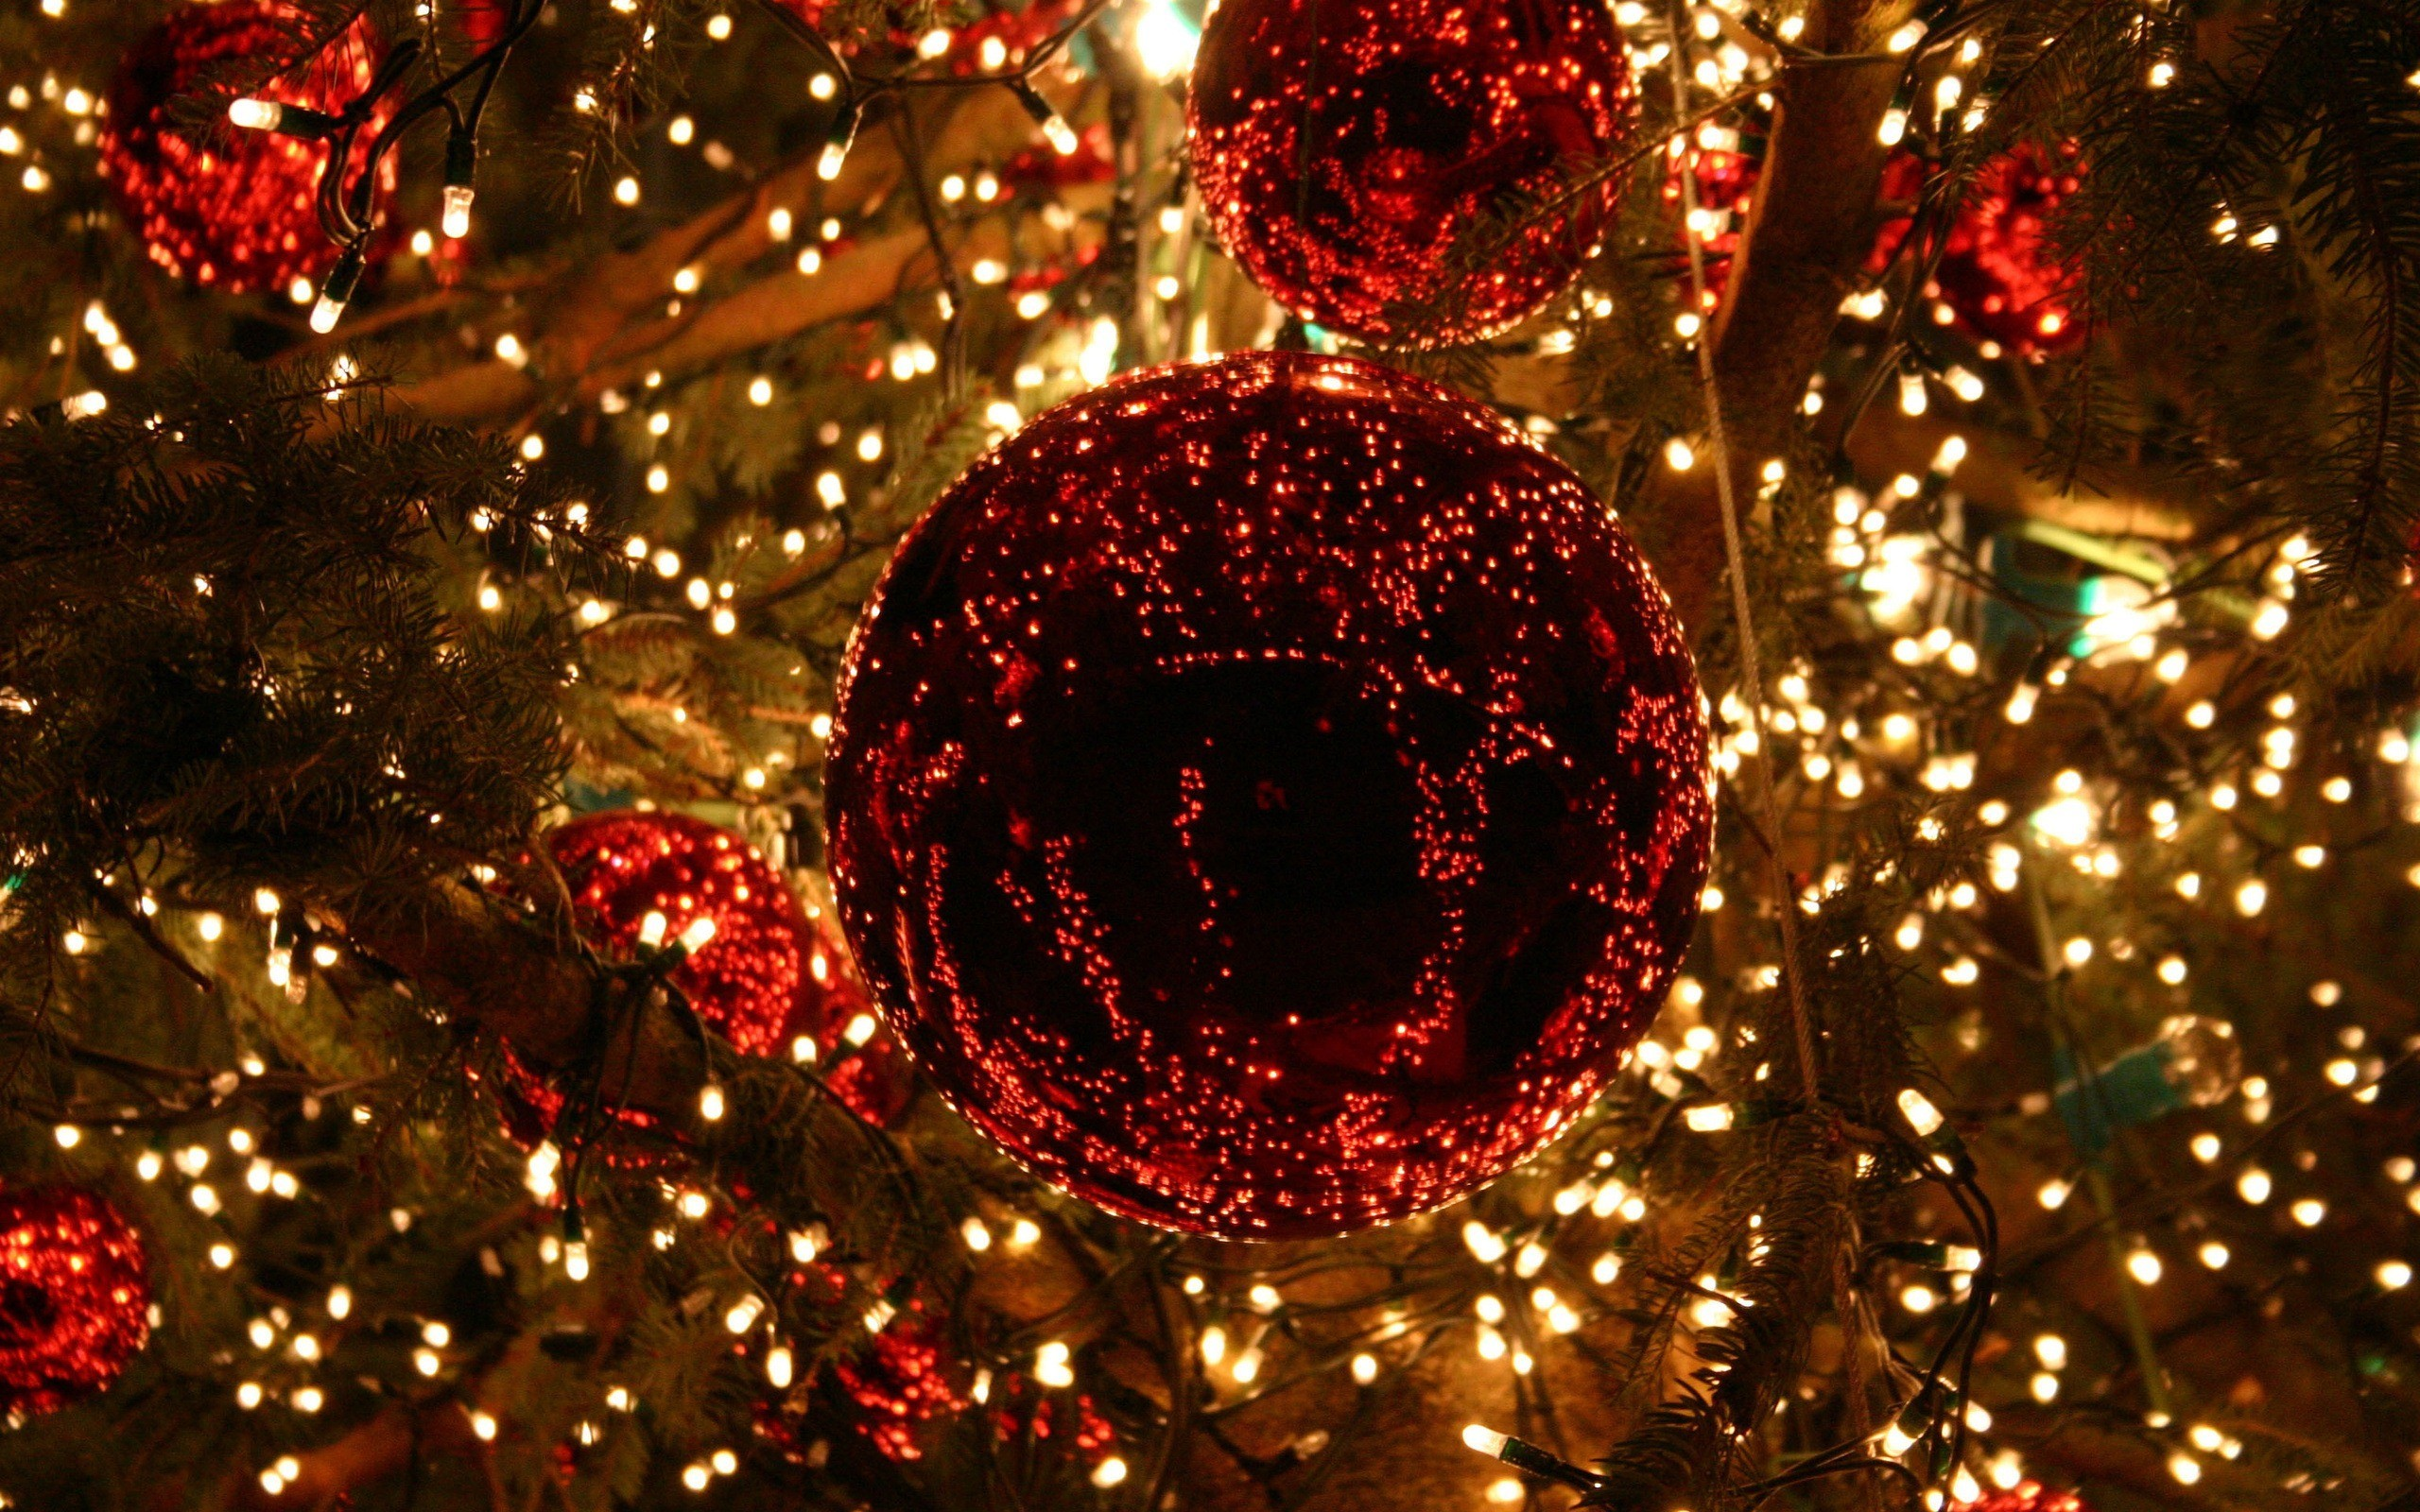 Christmas Backgrounds Tumblr.Large Christmas Backgrounds 58 Images